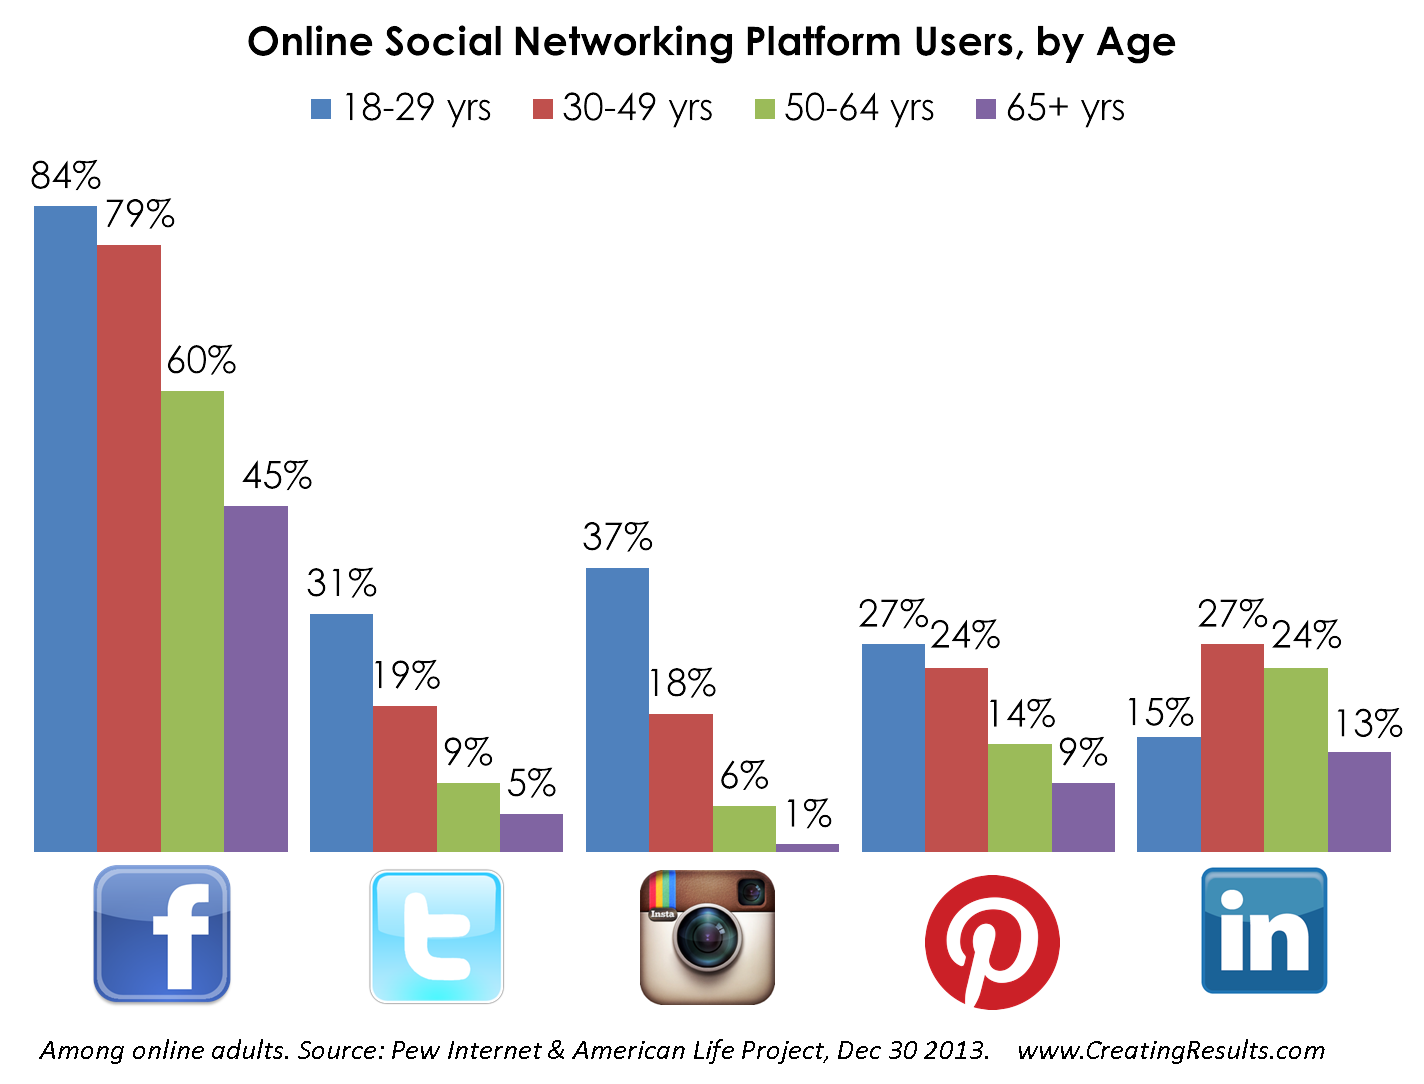 Online Social Networking Platform Users By Age